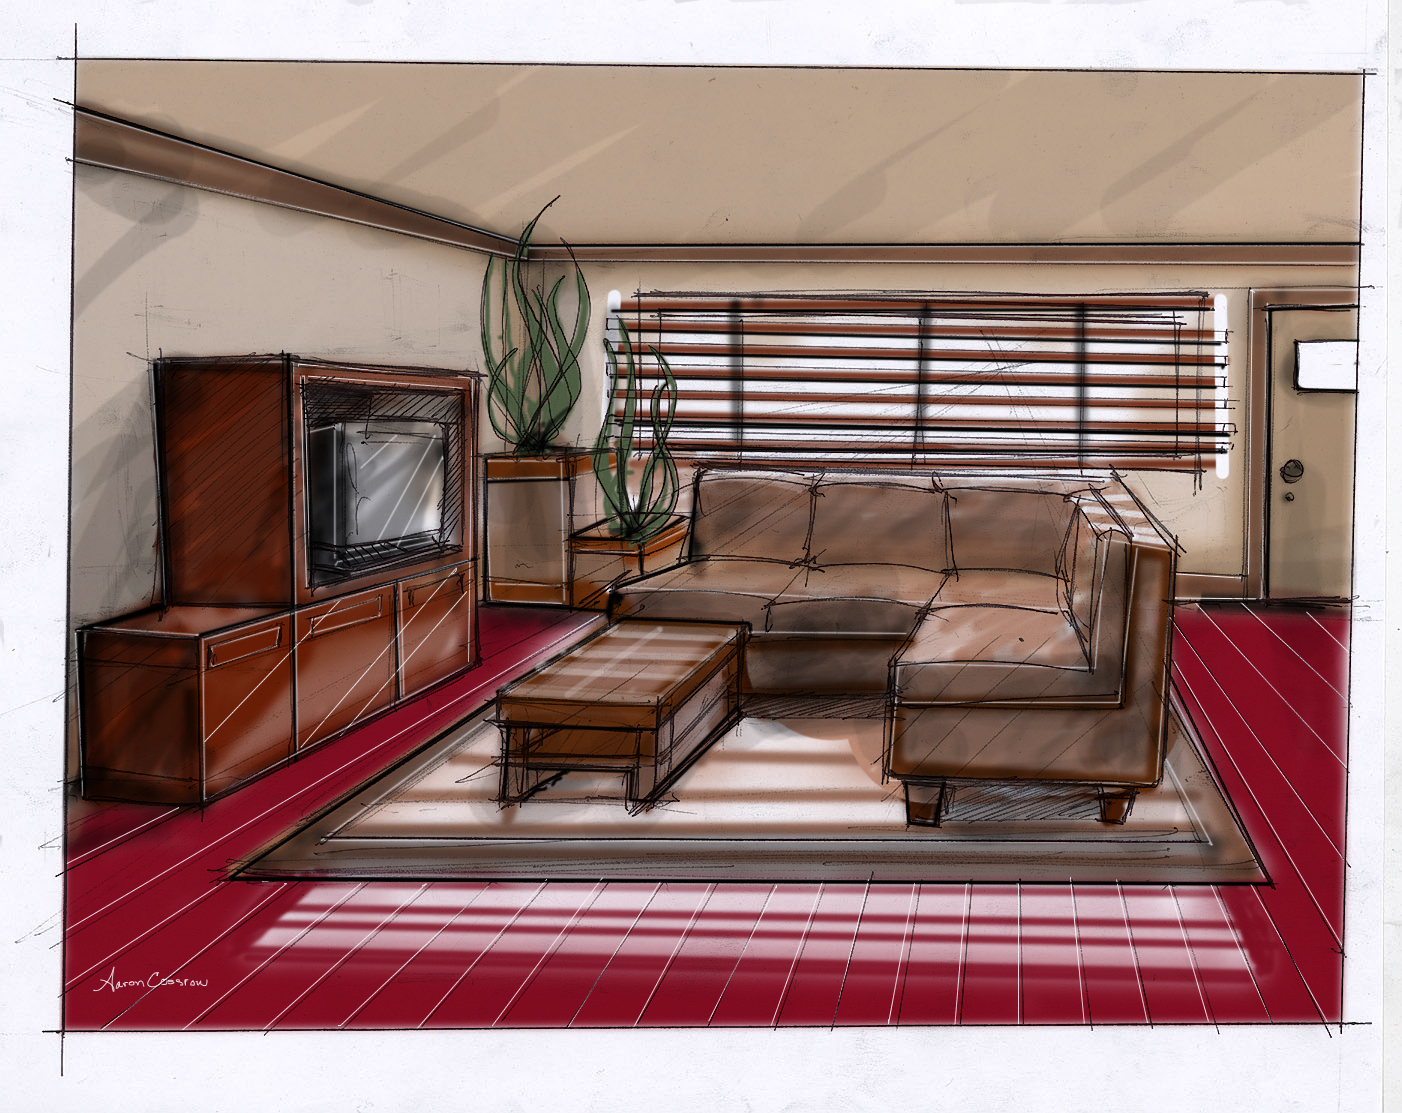 Interior Designs For Habitat Humanity Drawn Freehand Then Colored With A Wacom Tablet In Photoshop